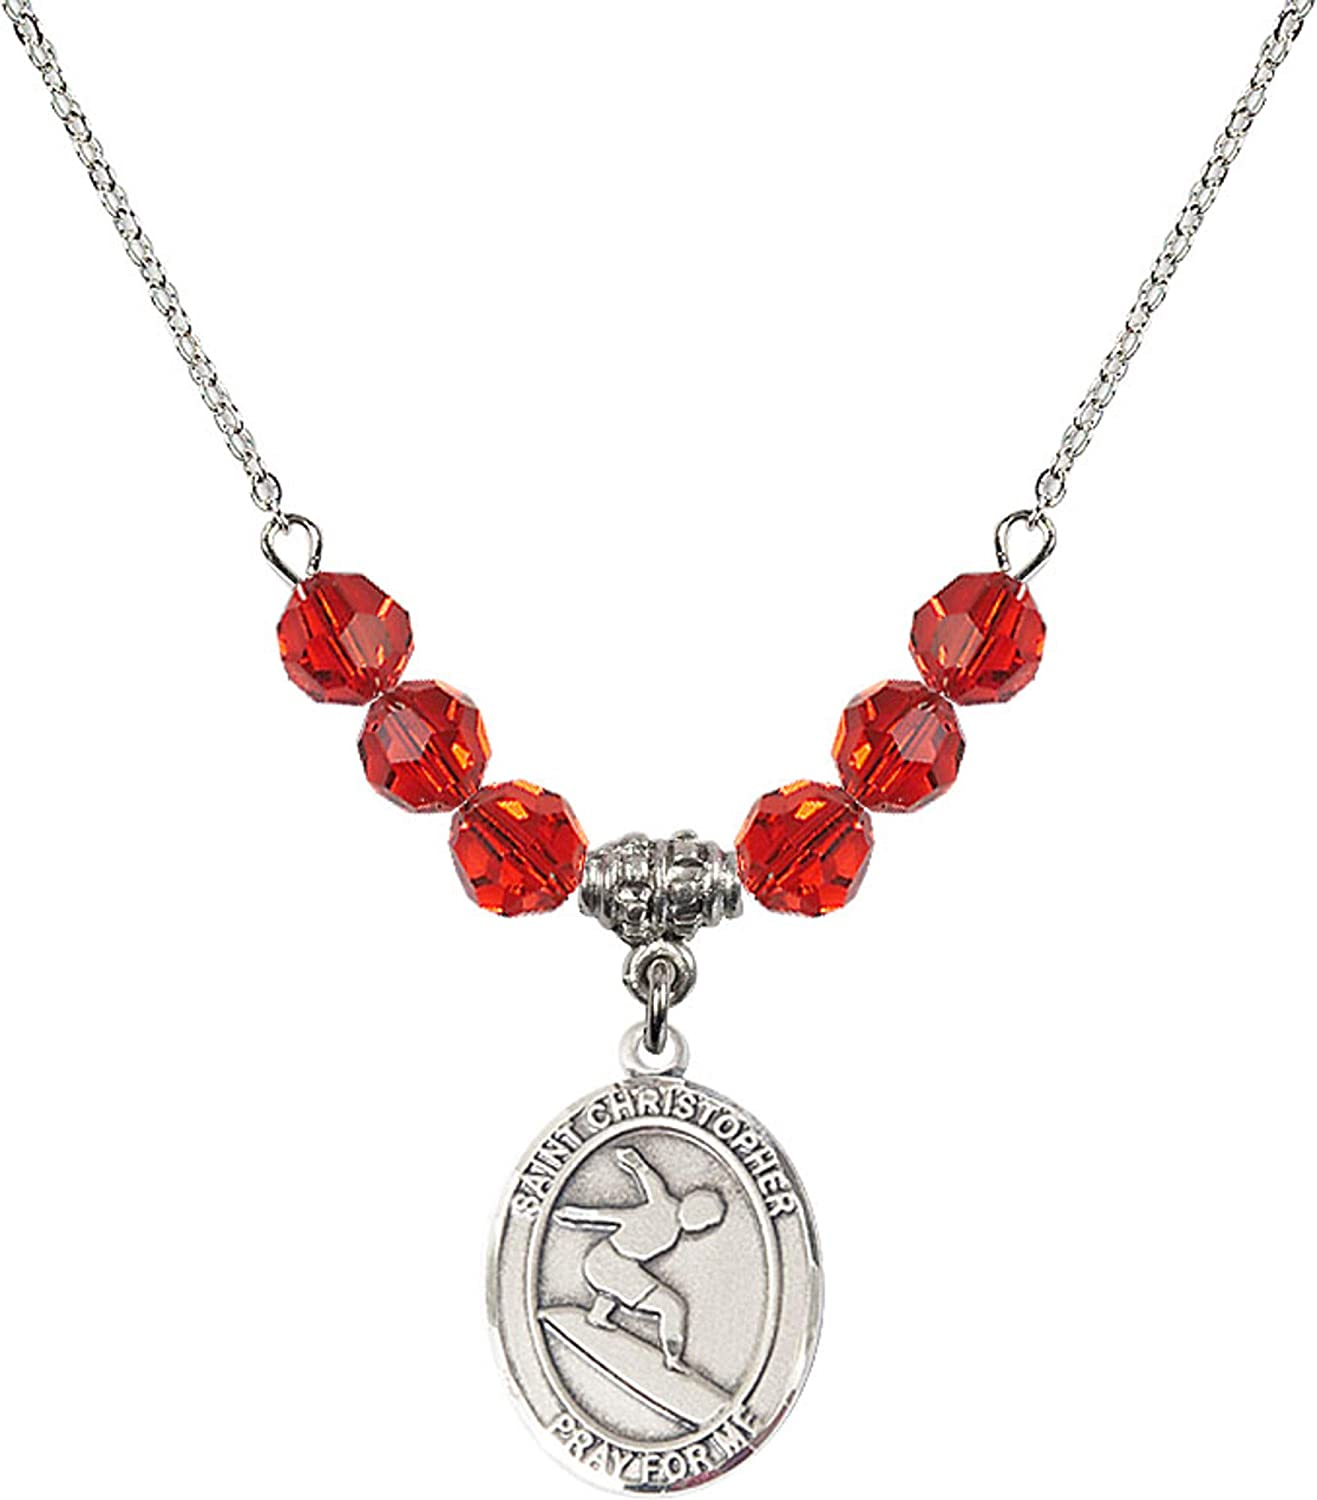 Bonyak Jewelry 18 Inch Rhodium Plated Necklace w// 6mm Red July Birth Month Stone Beads and Saint Christopher//Surfing Charm